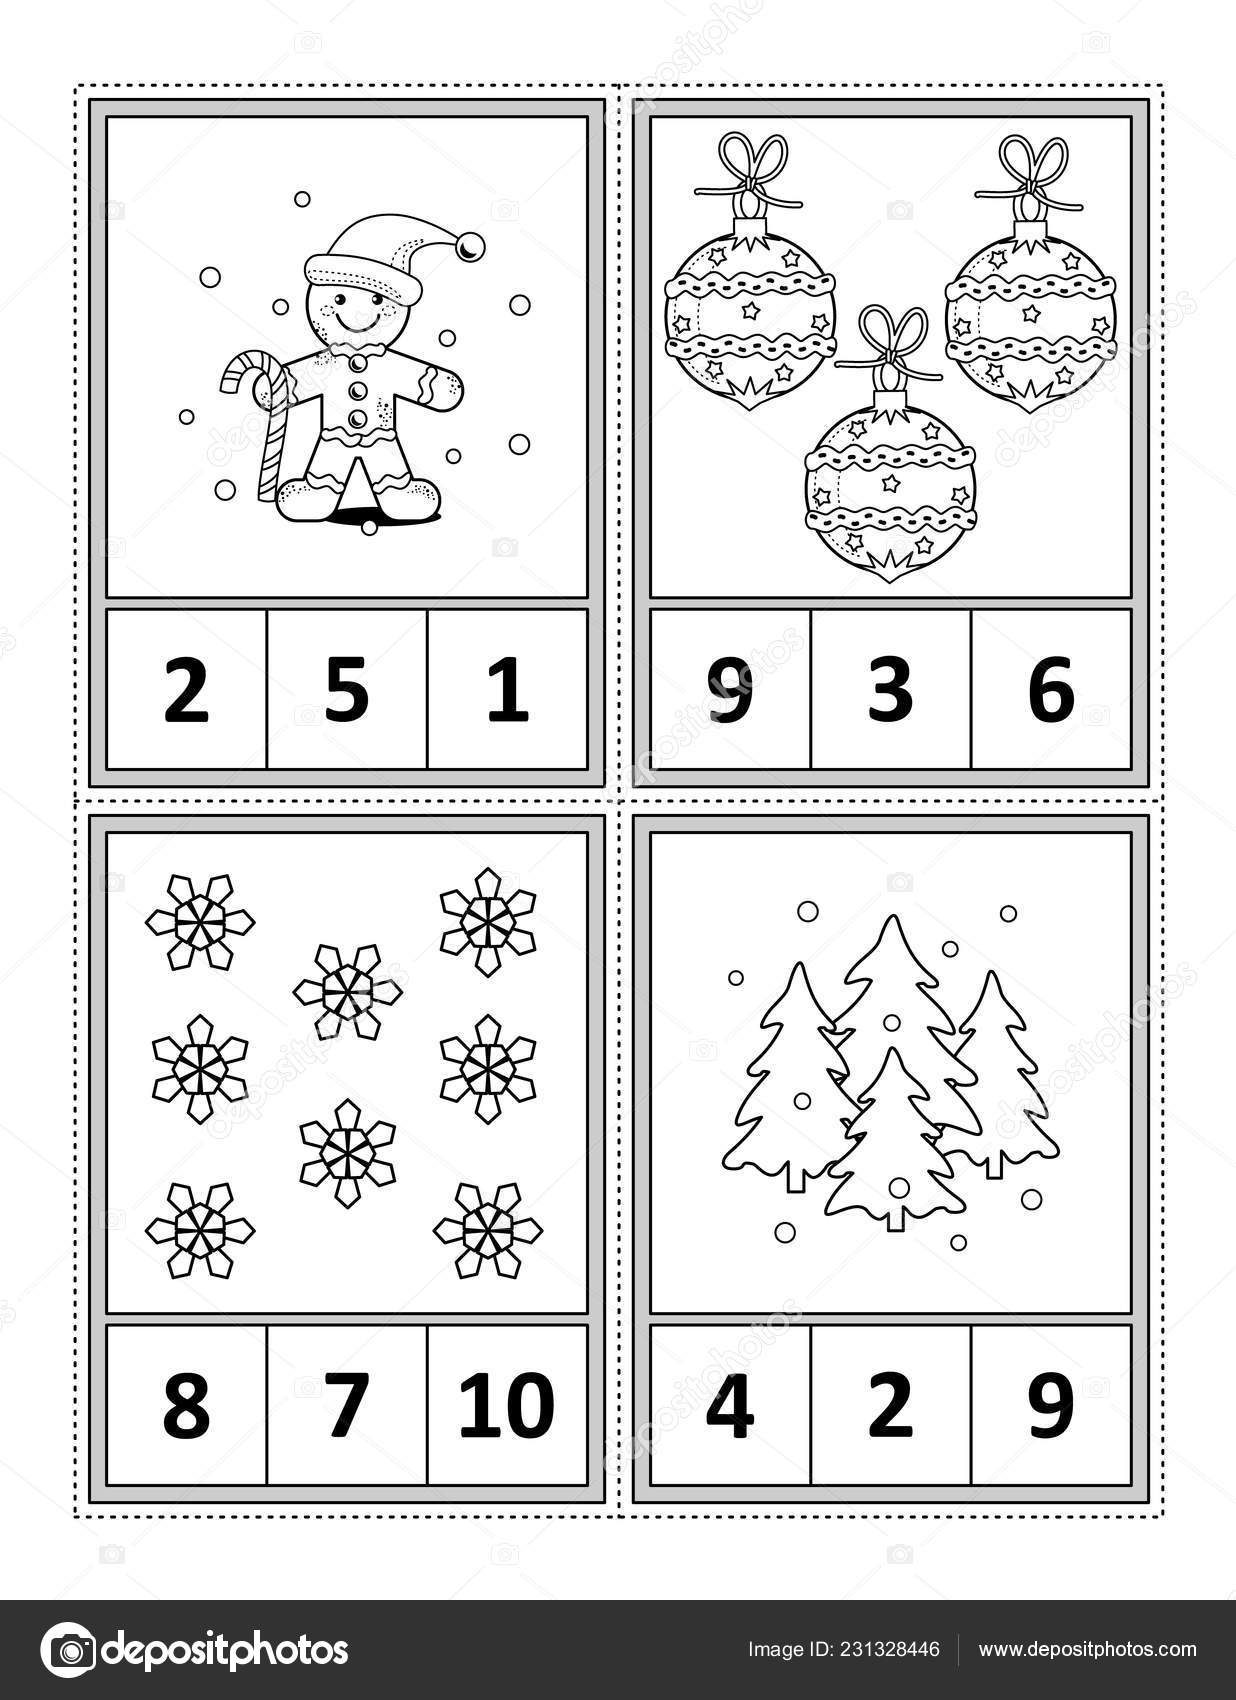 letter s worksheets count the pictures and circle the correct number 23132